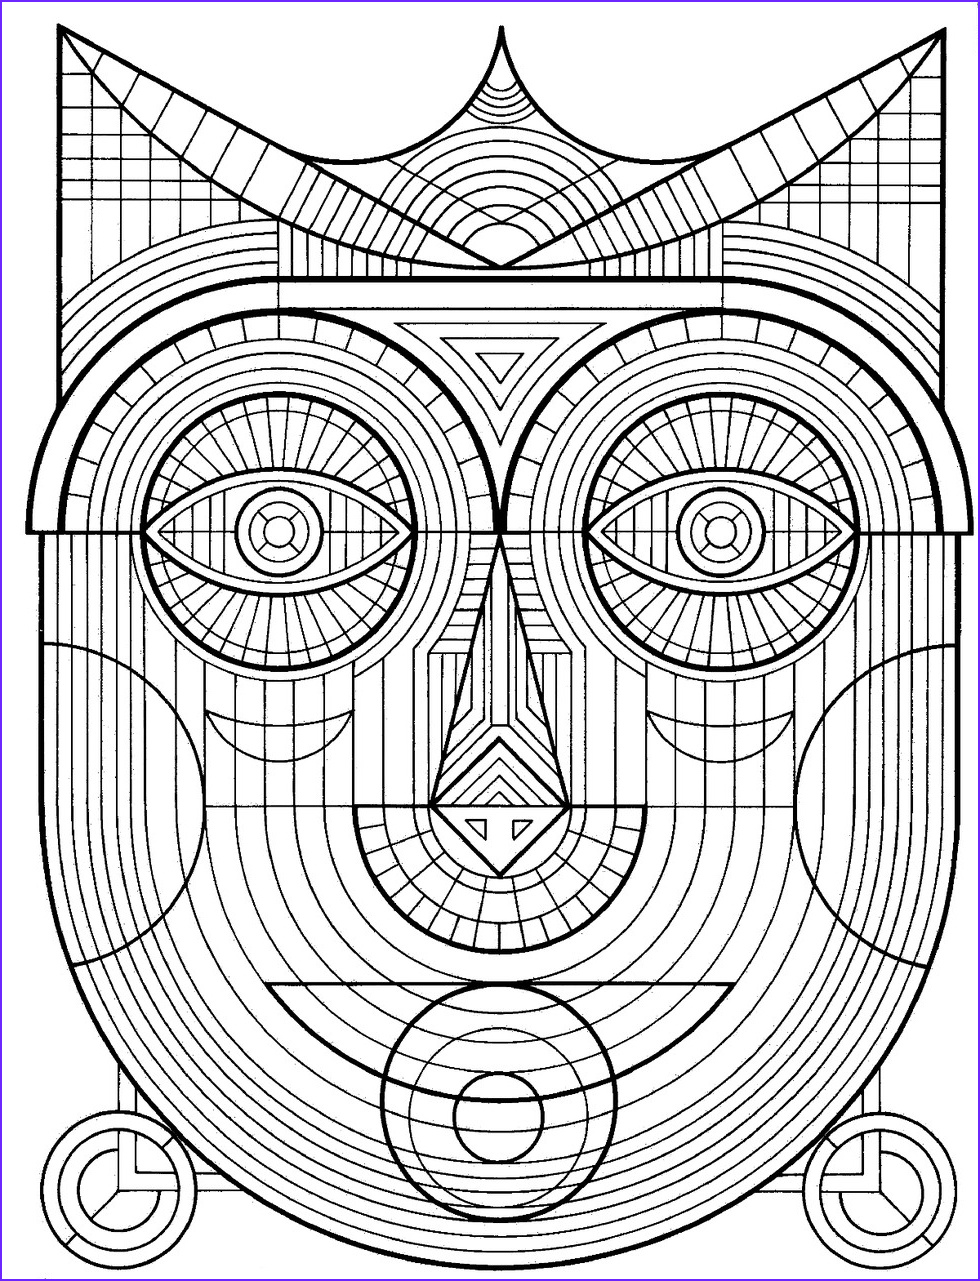 Stress Relieving Coloring Pages Inspirational Photos these Printable Mandala and Abstract Coloring Pages